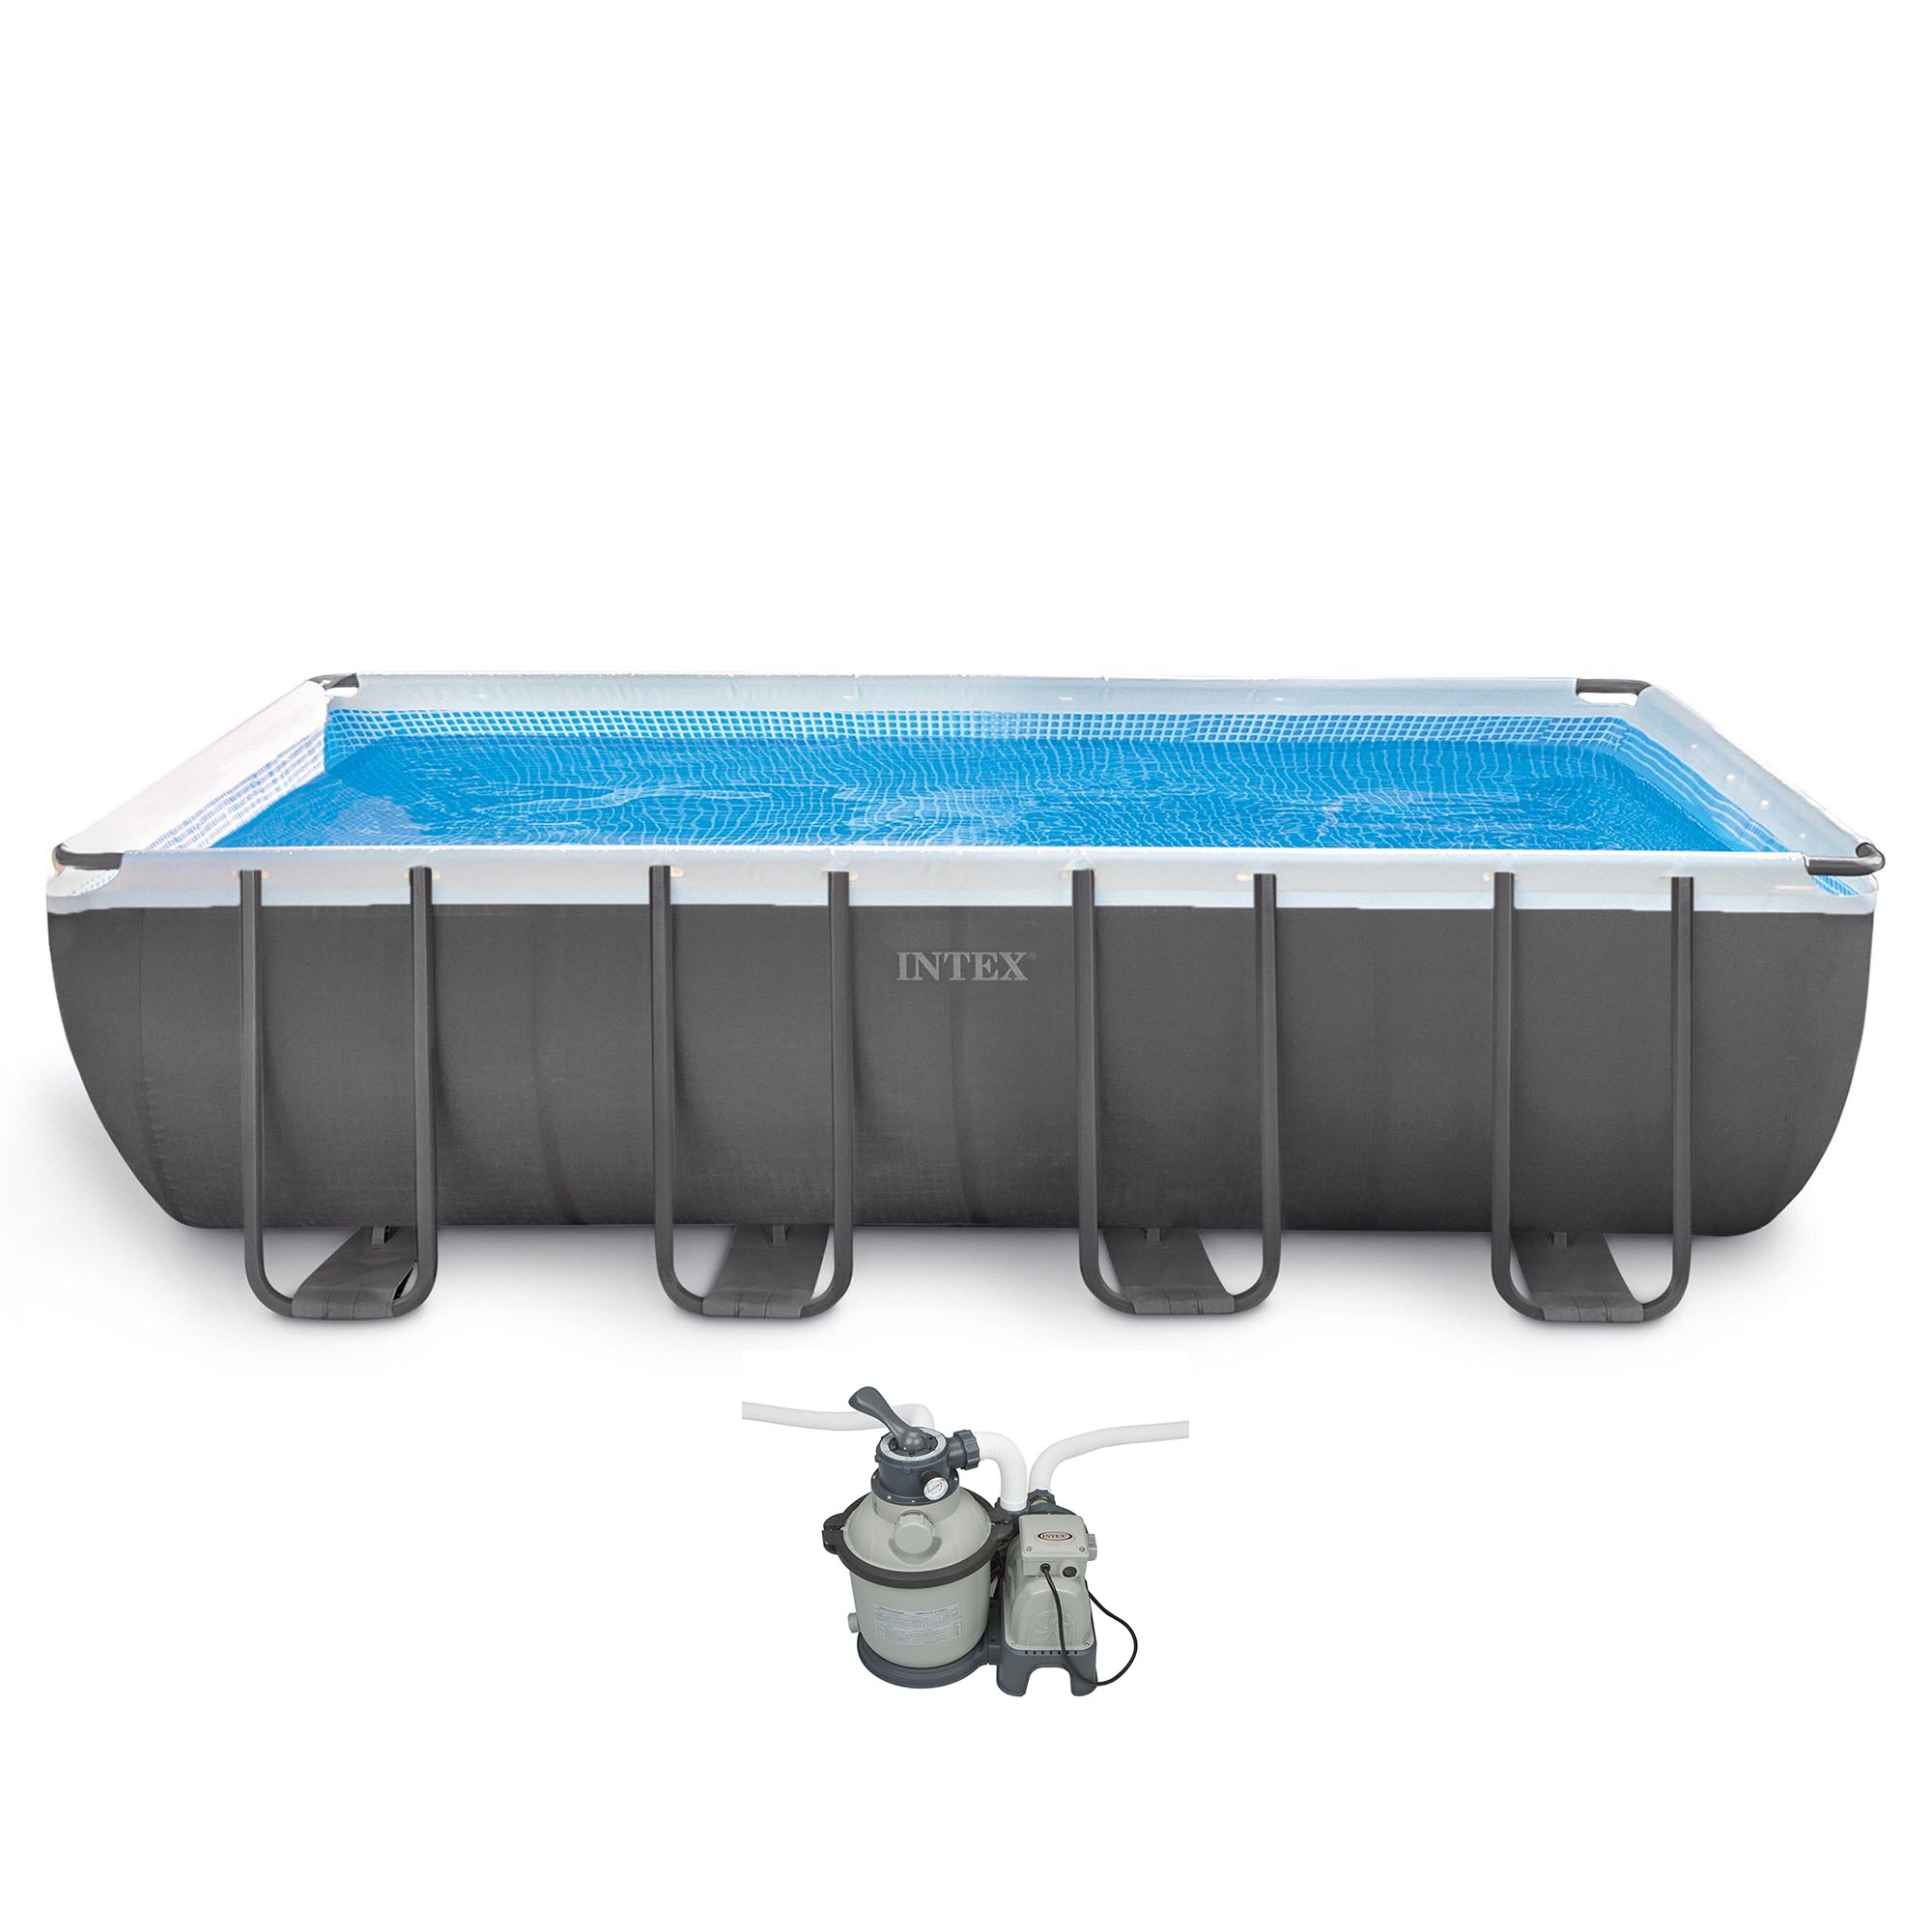 "Intex 18' x 9' x 52"" Ultra Frame Rectangular Above Ground Pool w  Pump & Ladder by Intex"